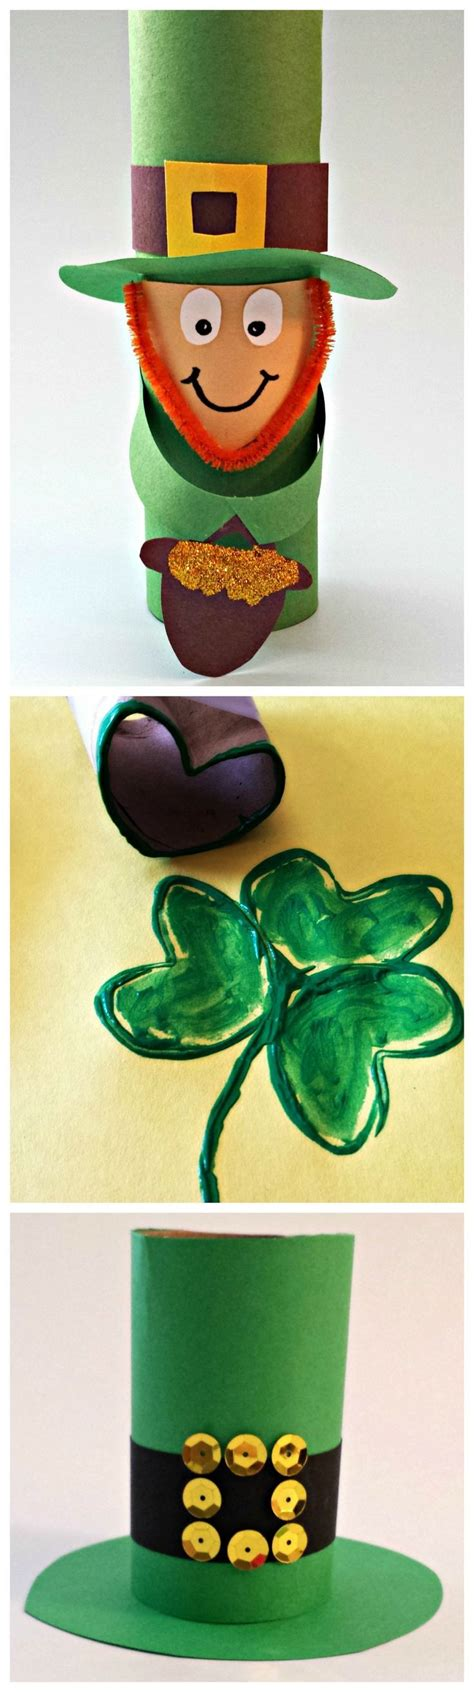 2015 top 20 easy st s day crafts ideas fashion